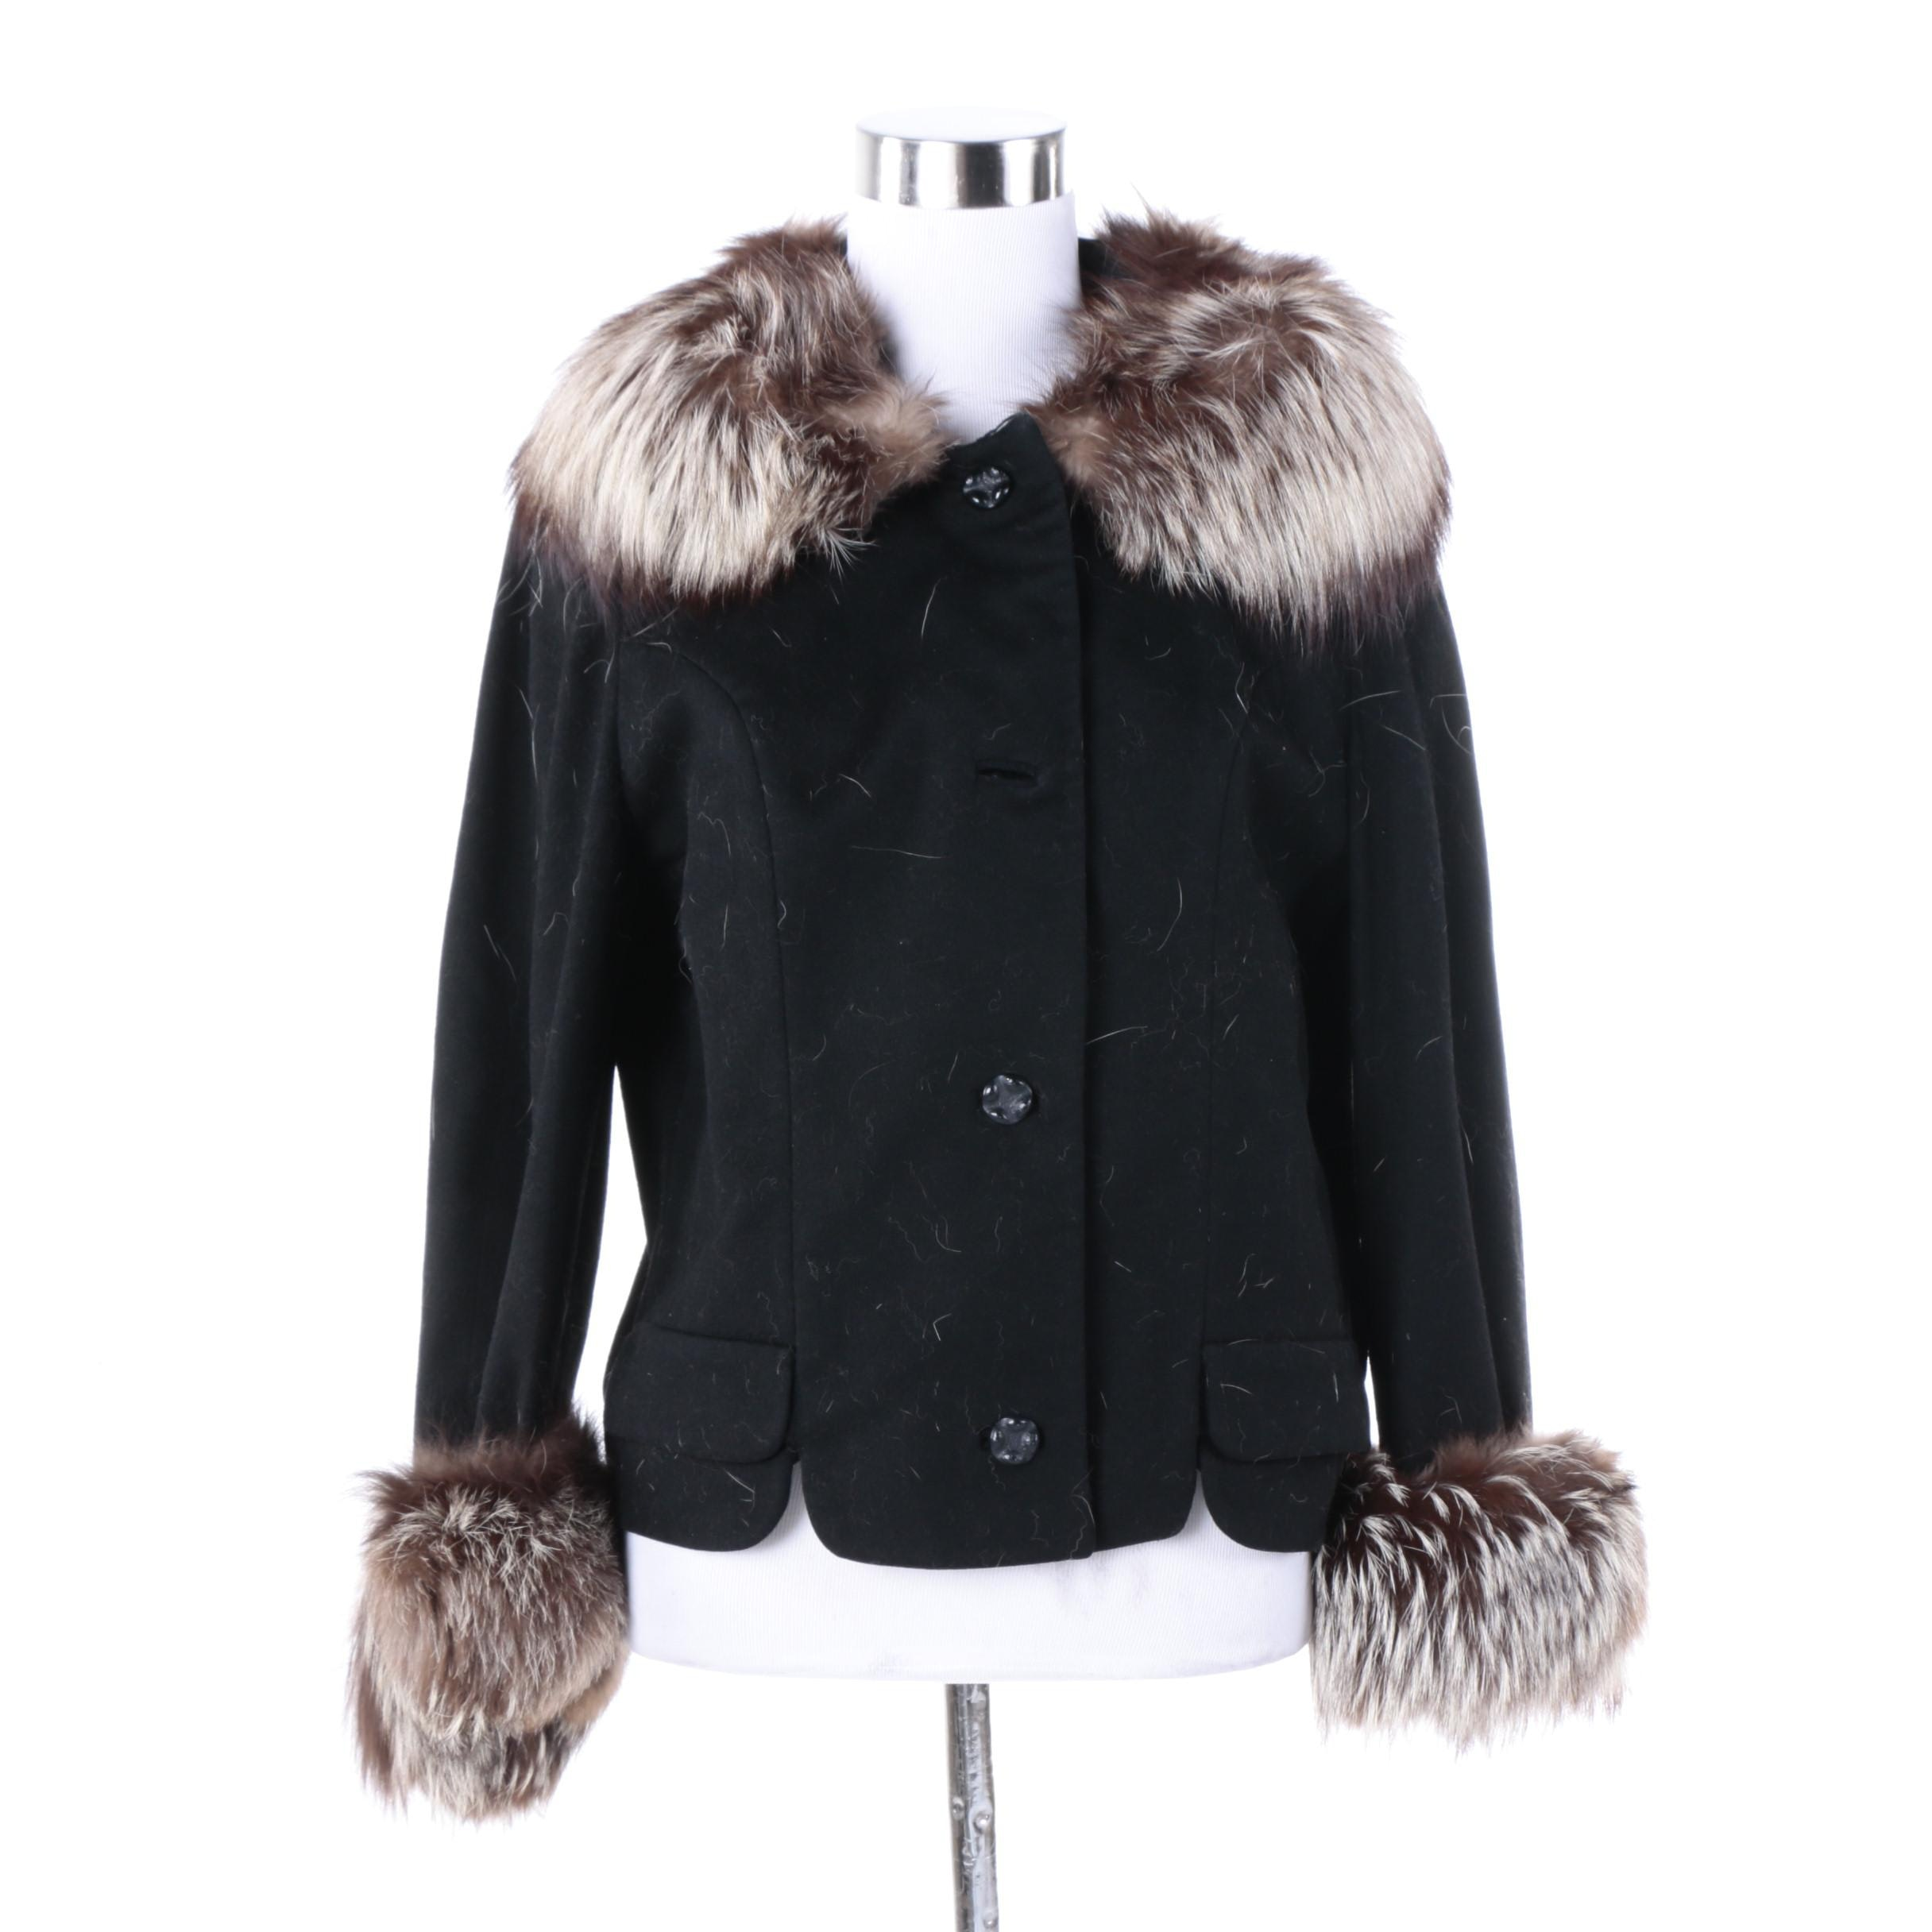 Women's Vintage Youthcraft Jacket with Silver Fox Fur Trim